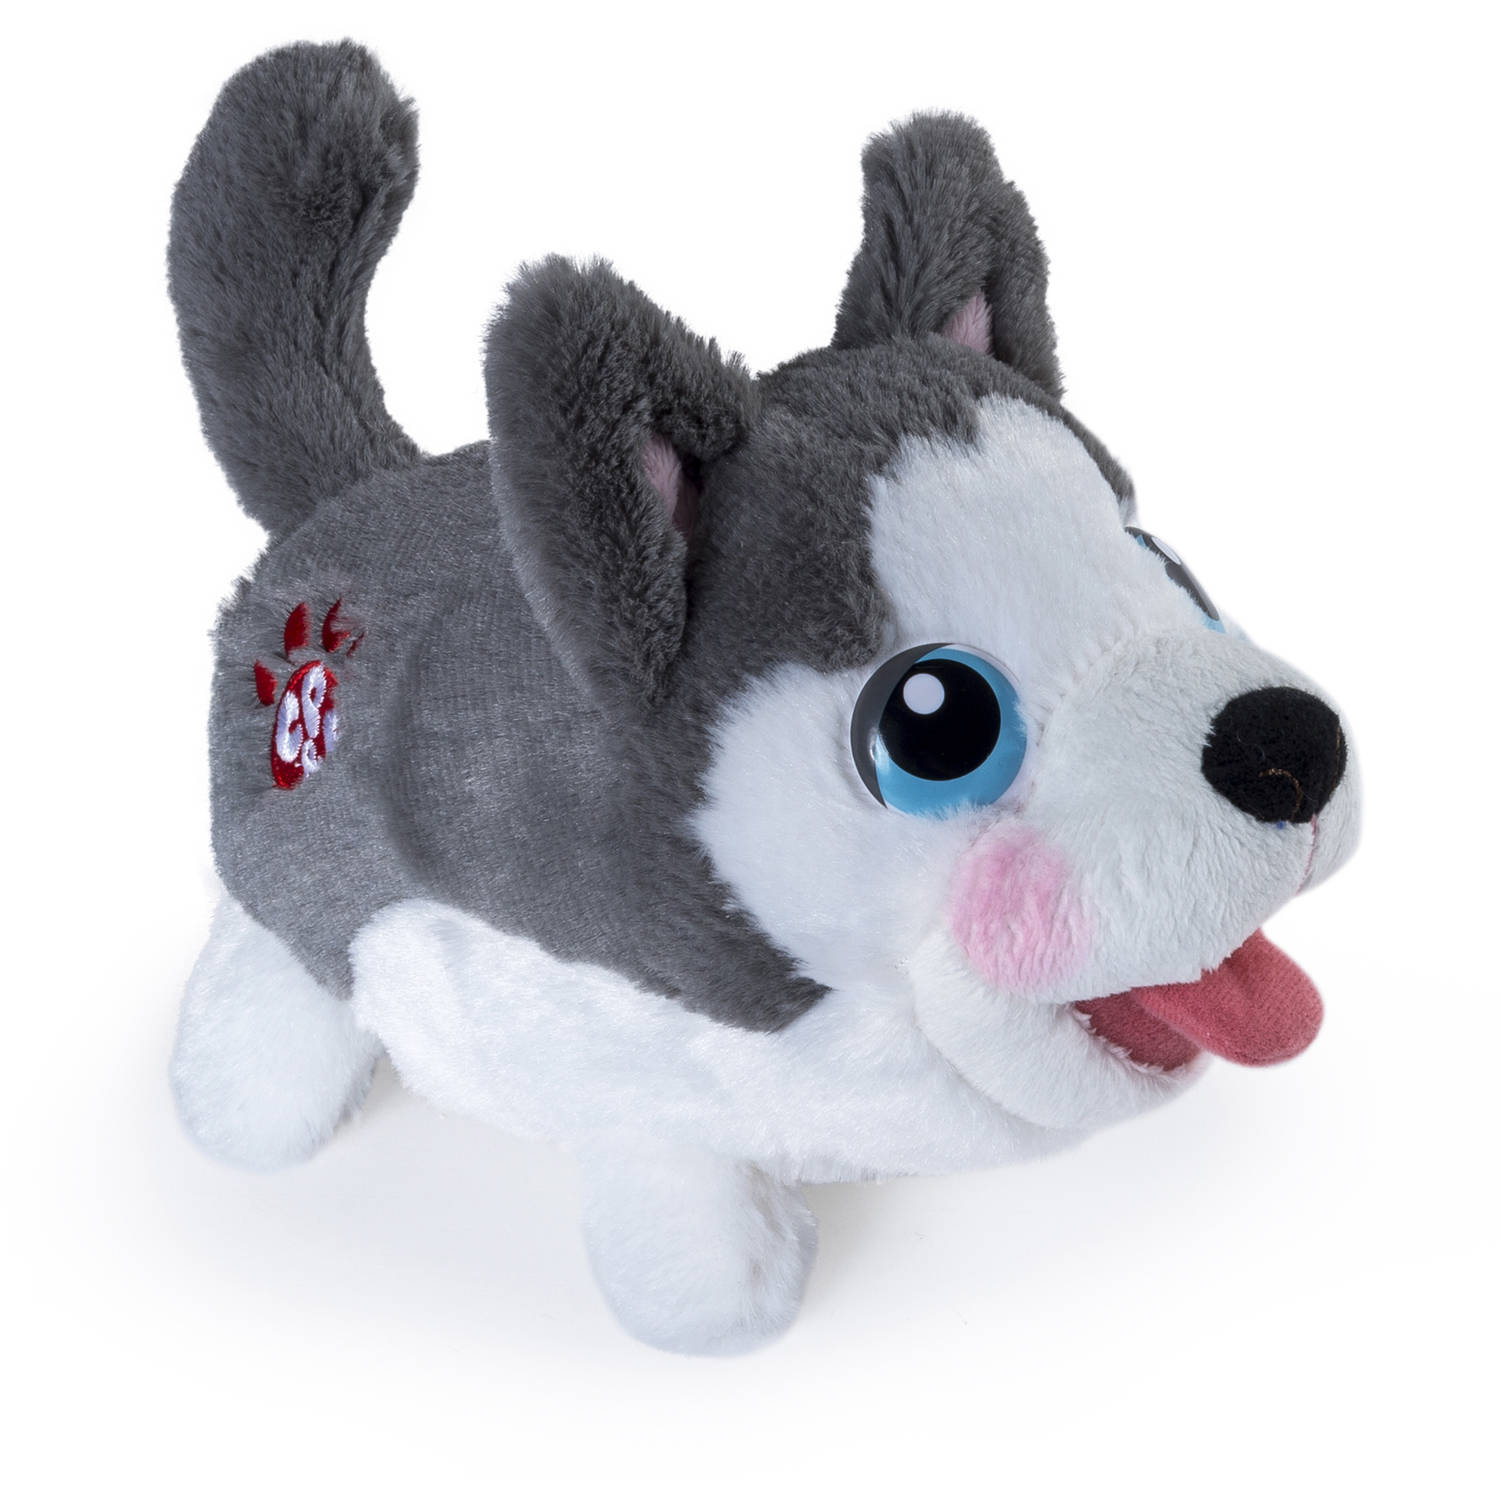 Chubby Puppies Plush, Husky